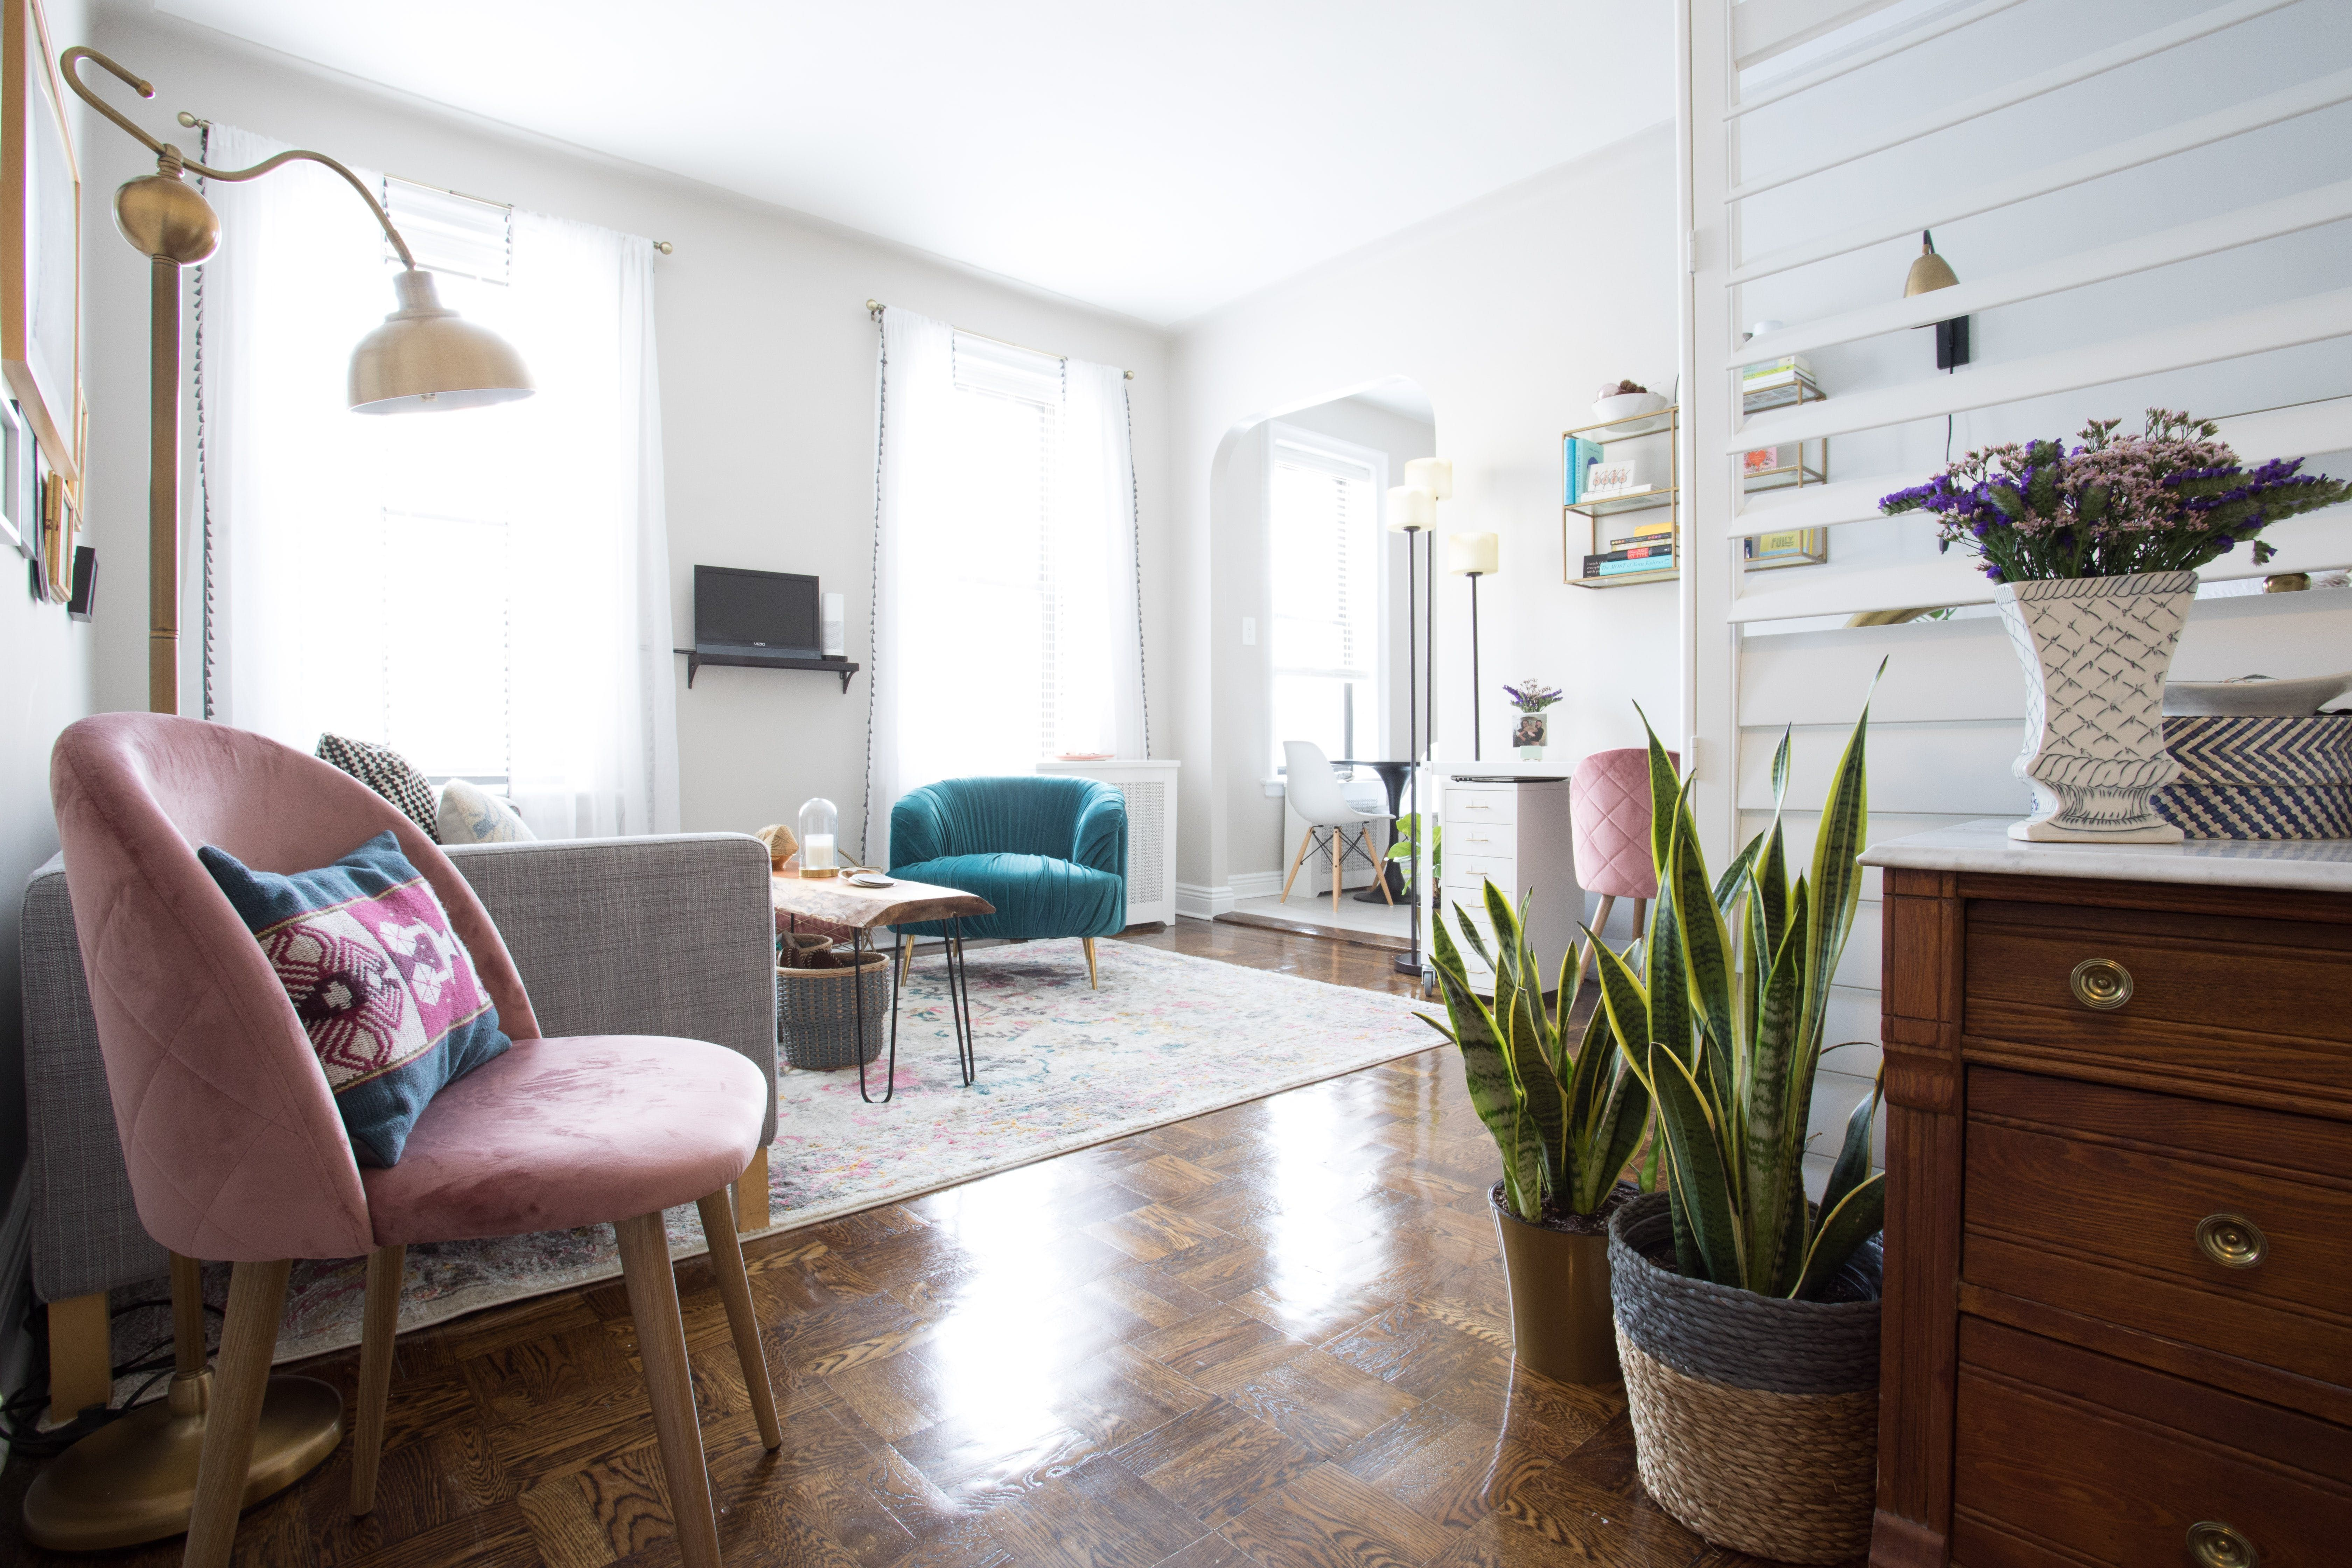 Freelance interior decorator elaine burns completed the search for an apartment of her own  little over six months ago purchasing this square foot also nyc studio has ingenious room divider rh pinterest